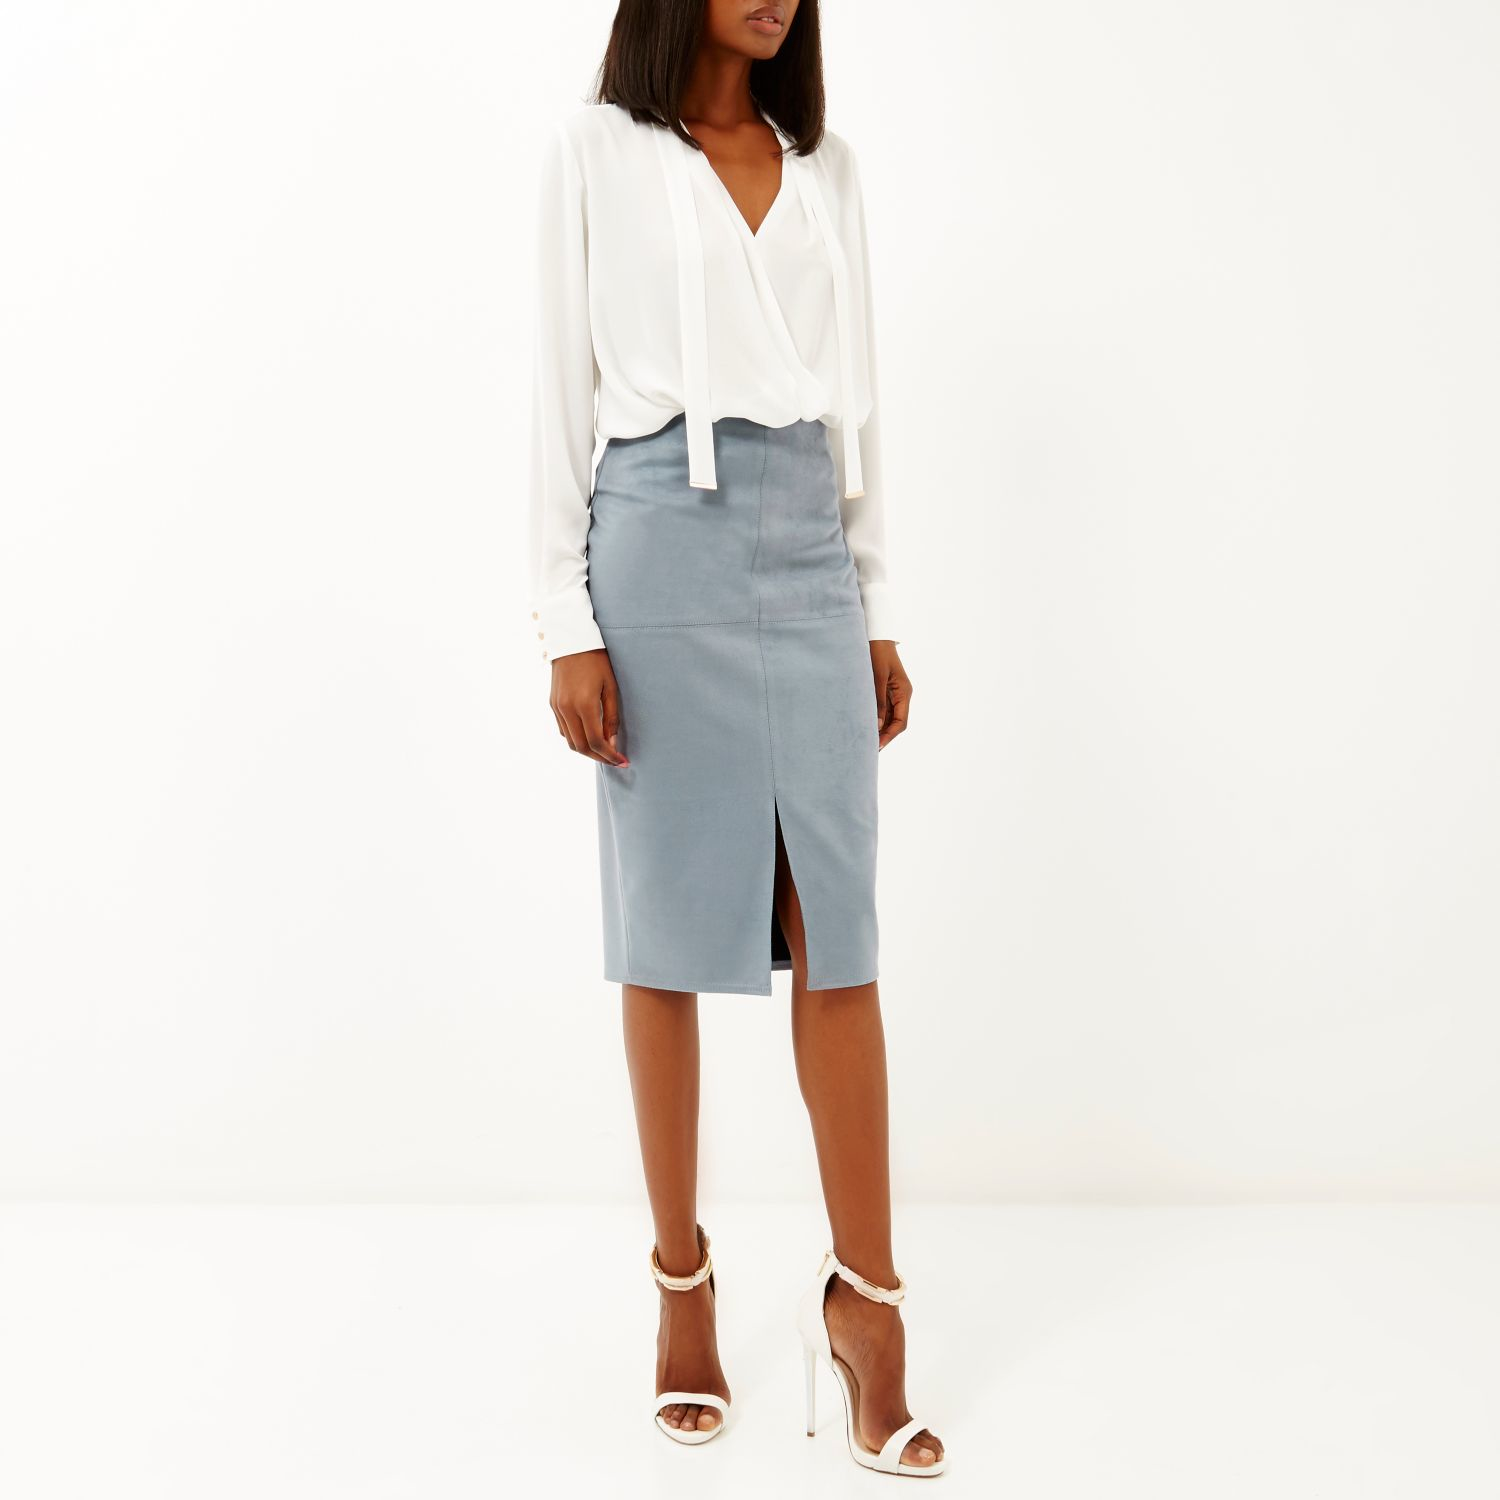 Suede Pencil Skirt - Skirts